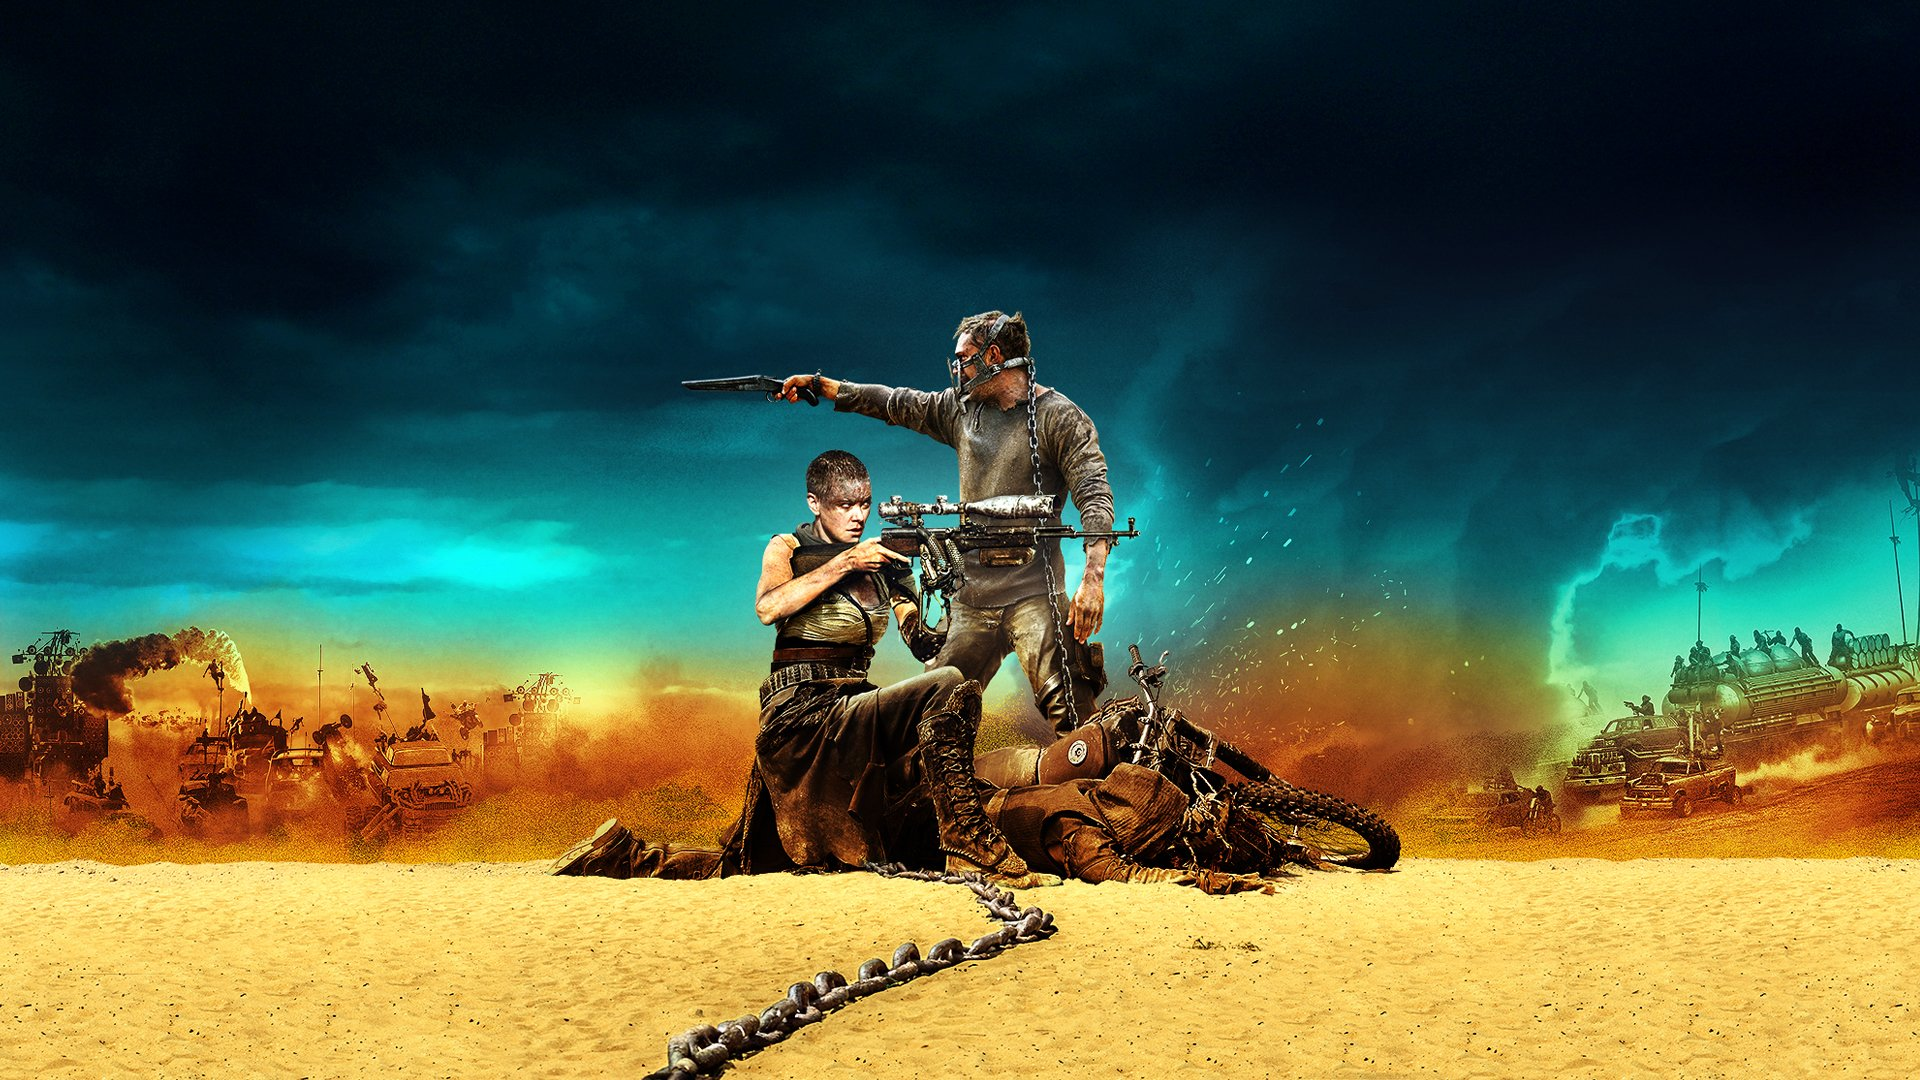 Mad Max Fury Road Wallpaper 1920x1080 by sachso74 1920x1080